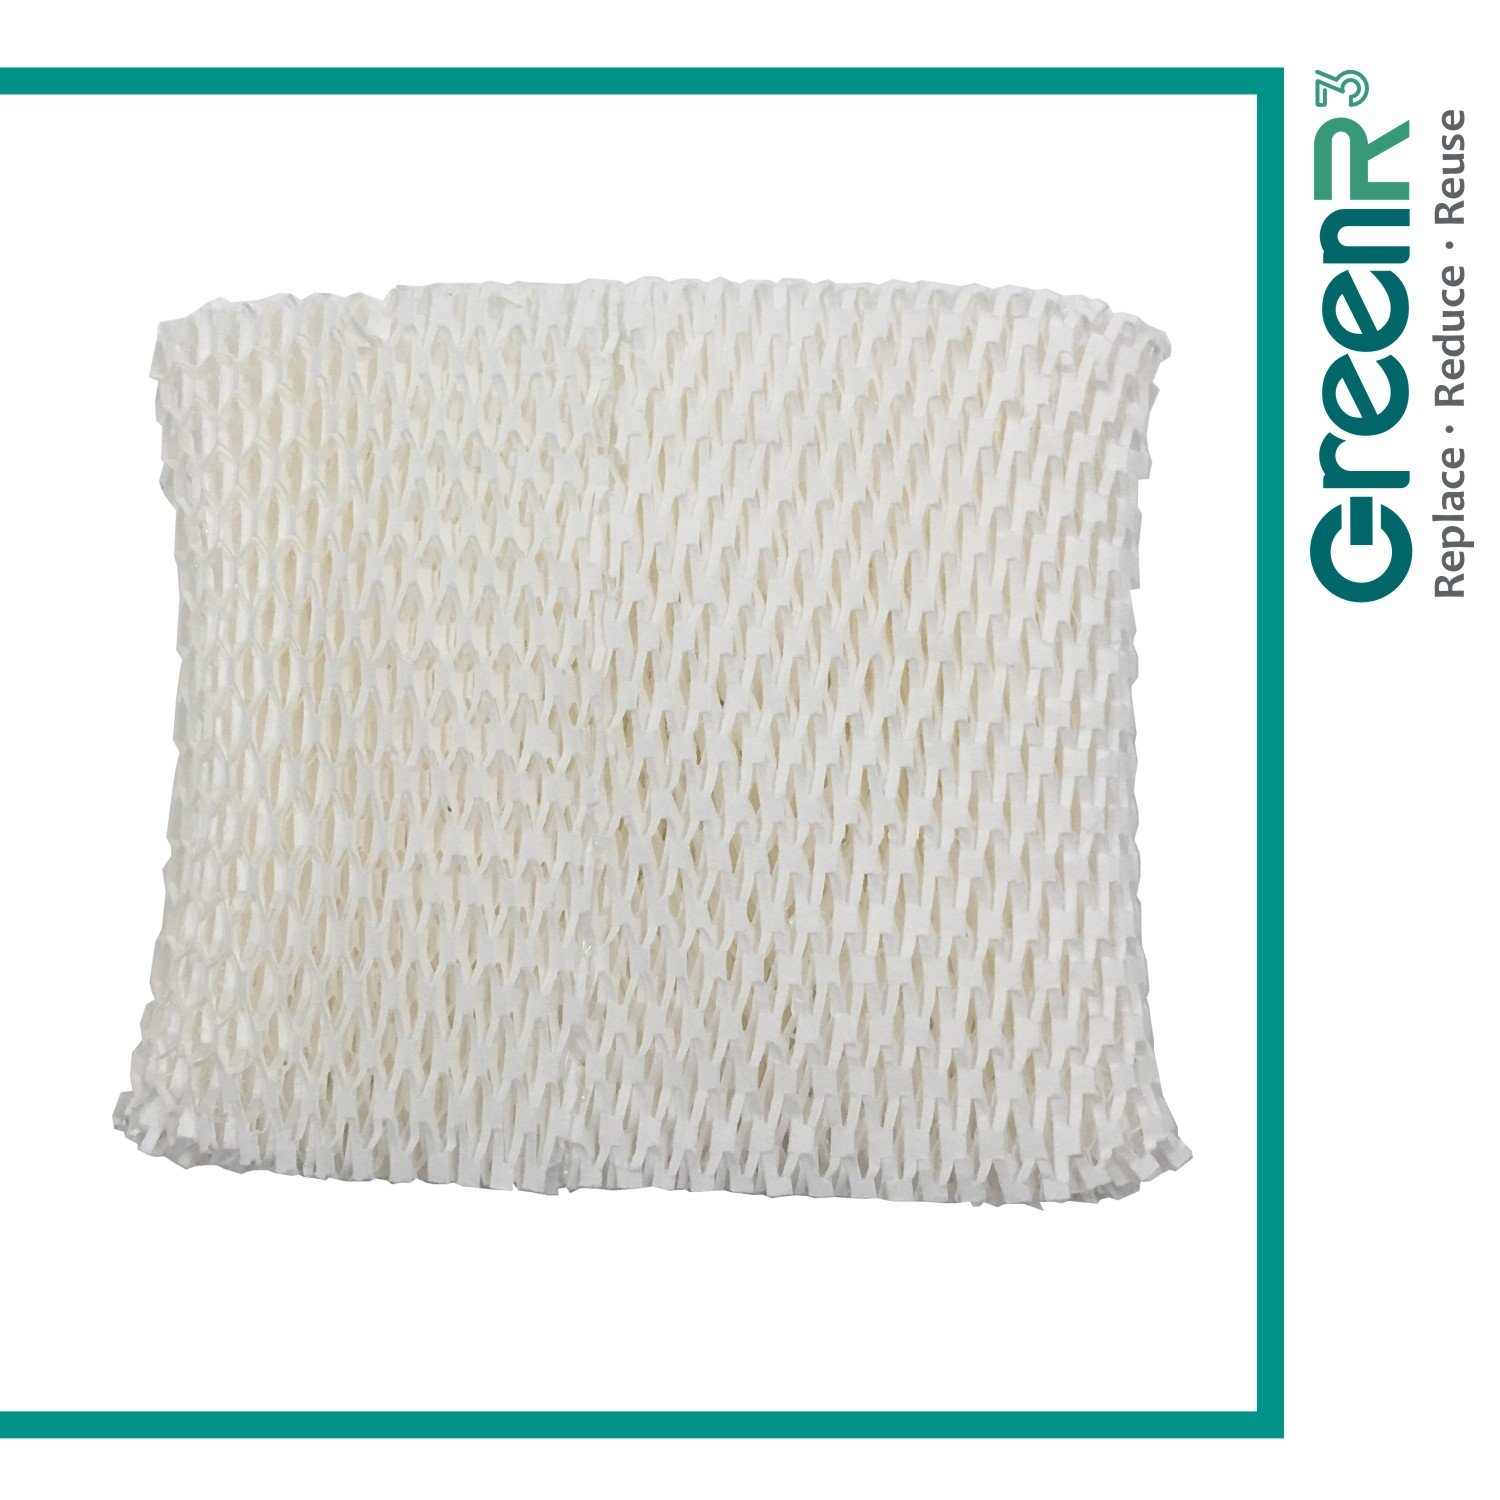 GreenR3 1-PACK Wick Filters Humidifiers For Honeywell HC-888 fits HCM890 HCM890C HCM890-20 HCM-890 HCM-890-C HCM-890-20 Duracraft DCM200 HCM890 DH888 DH890 DH890C AC-888 Best Air D88 and more